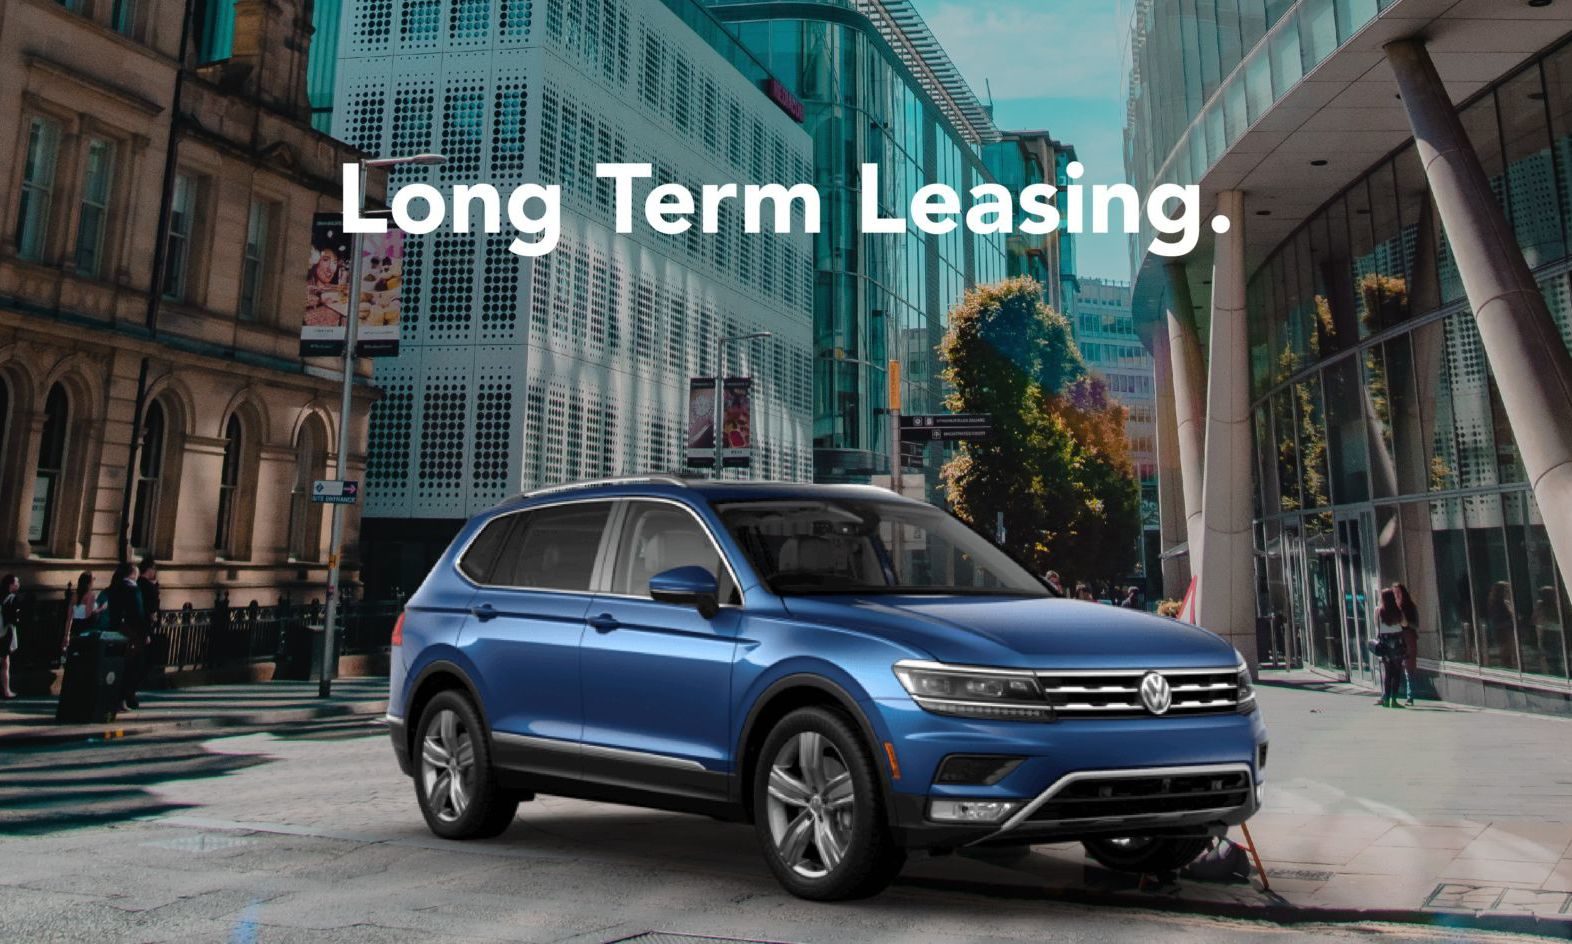 Long Term Leasing